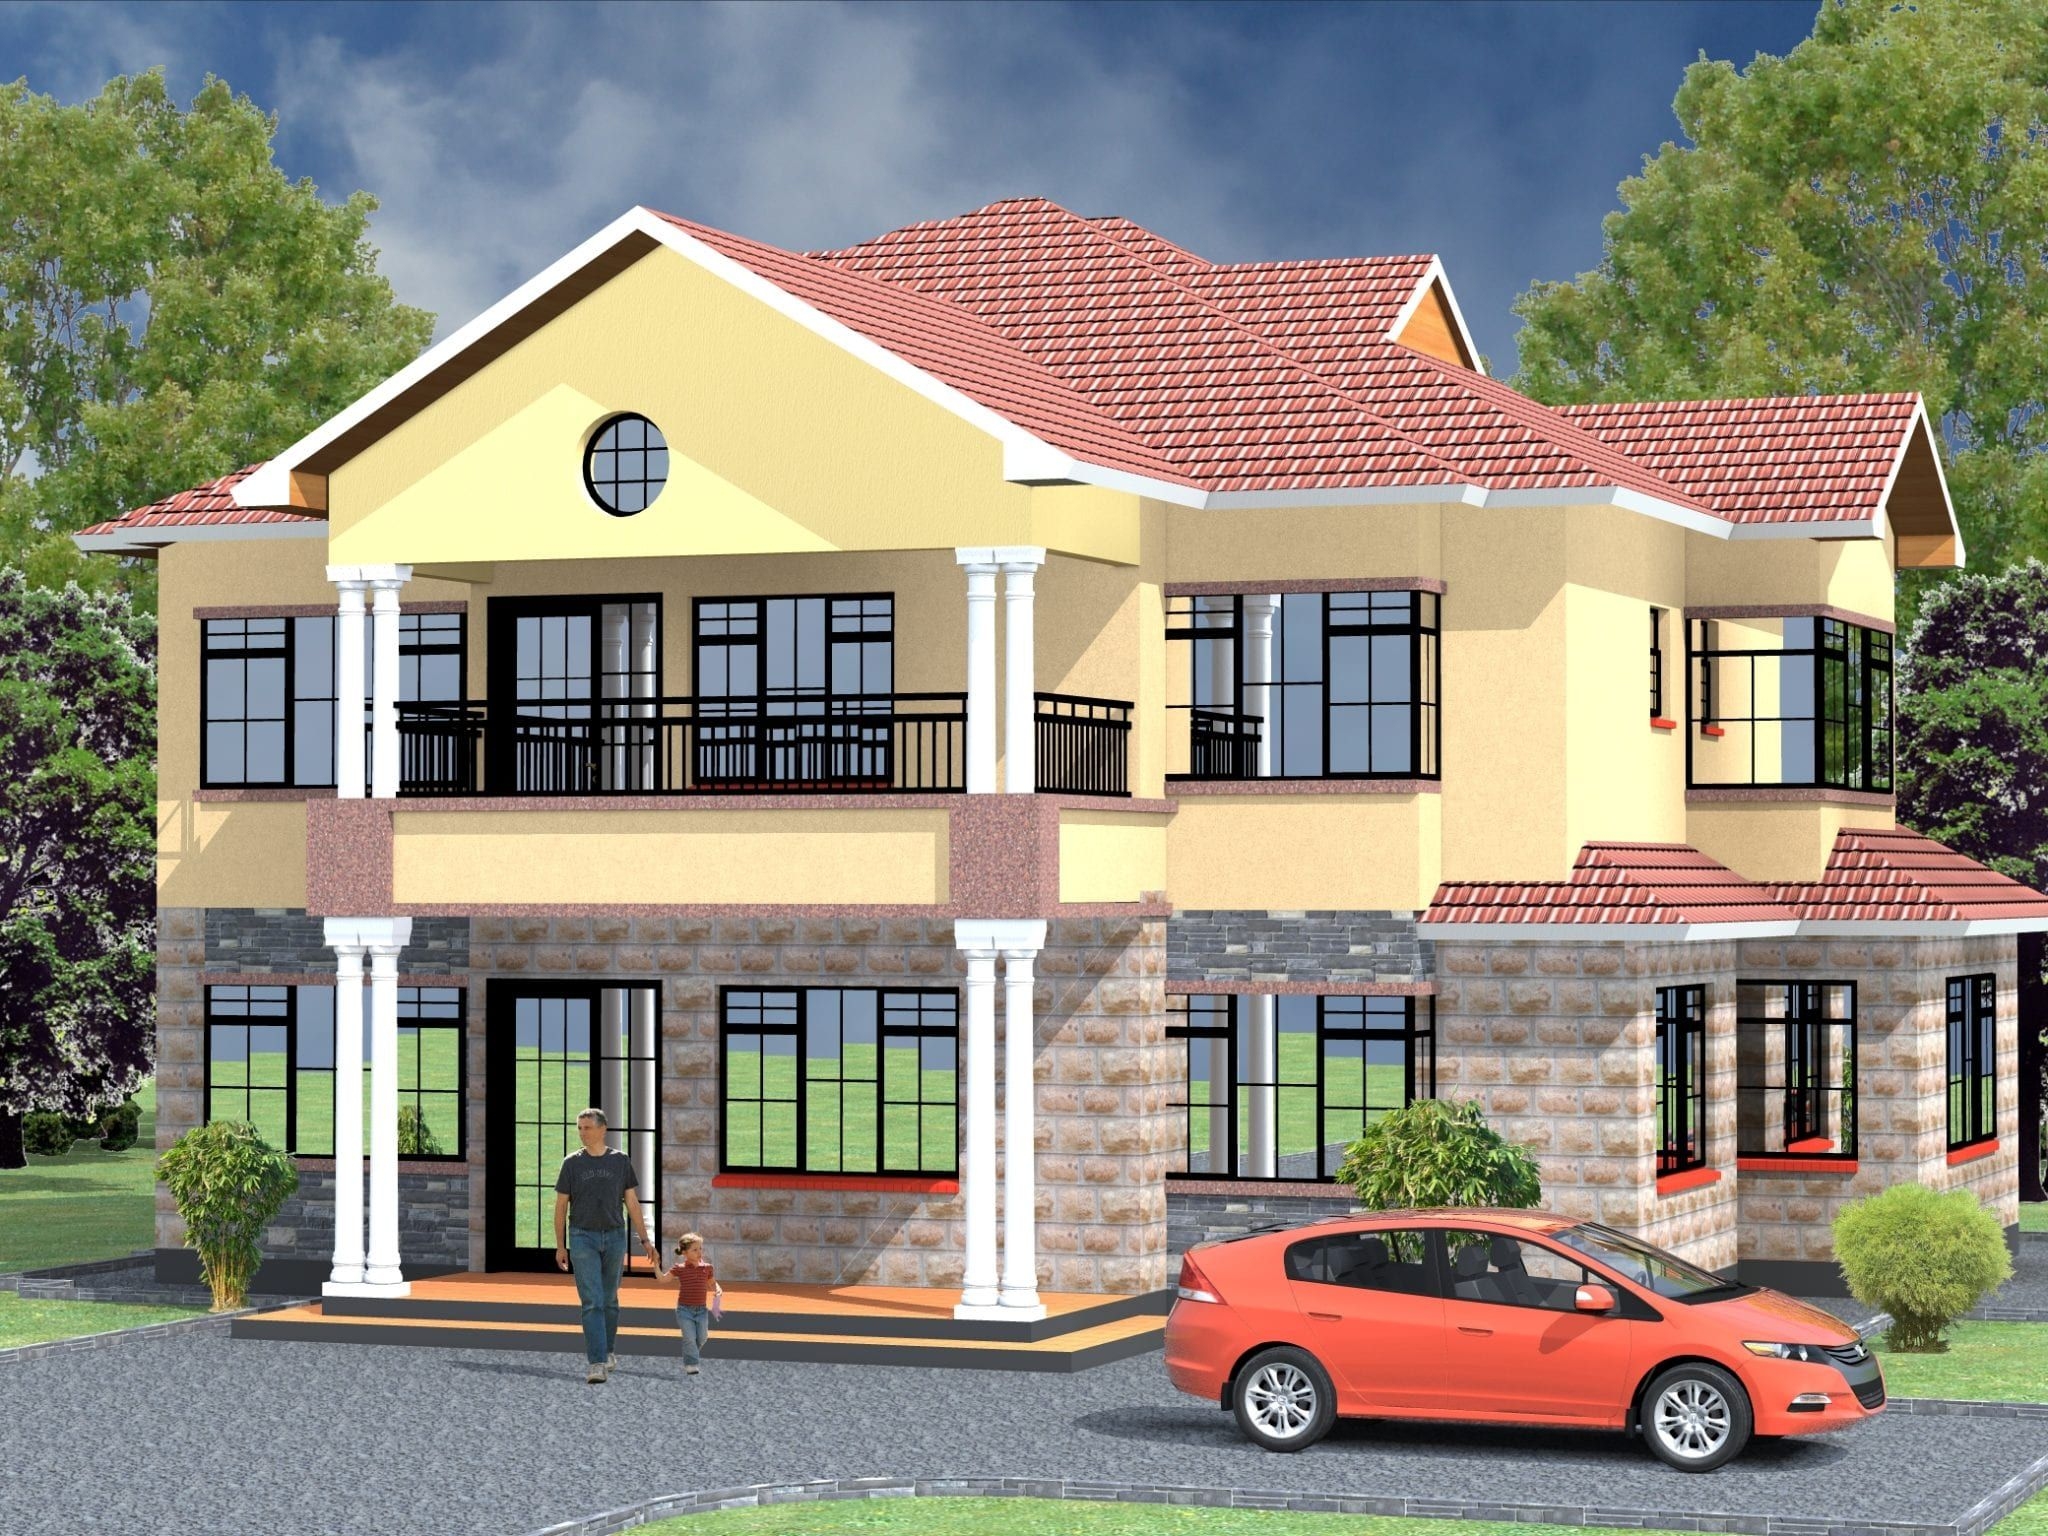 4 Bedroom Design 1045 A In 2021 Affordable House Plans House Plans House Projects Architecture